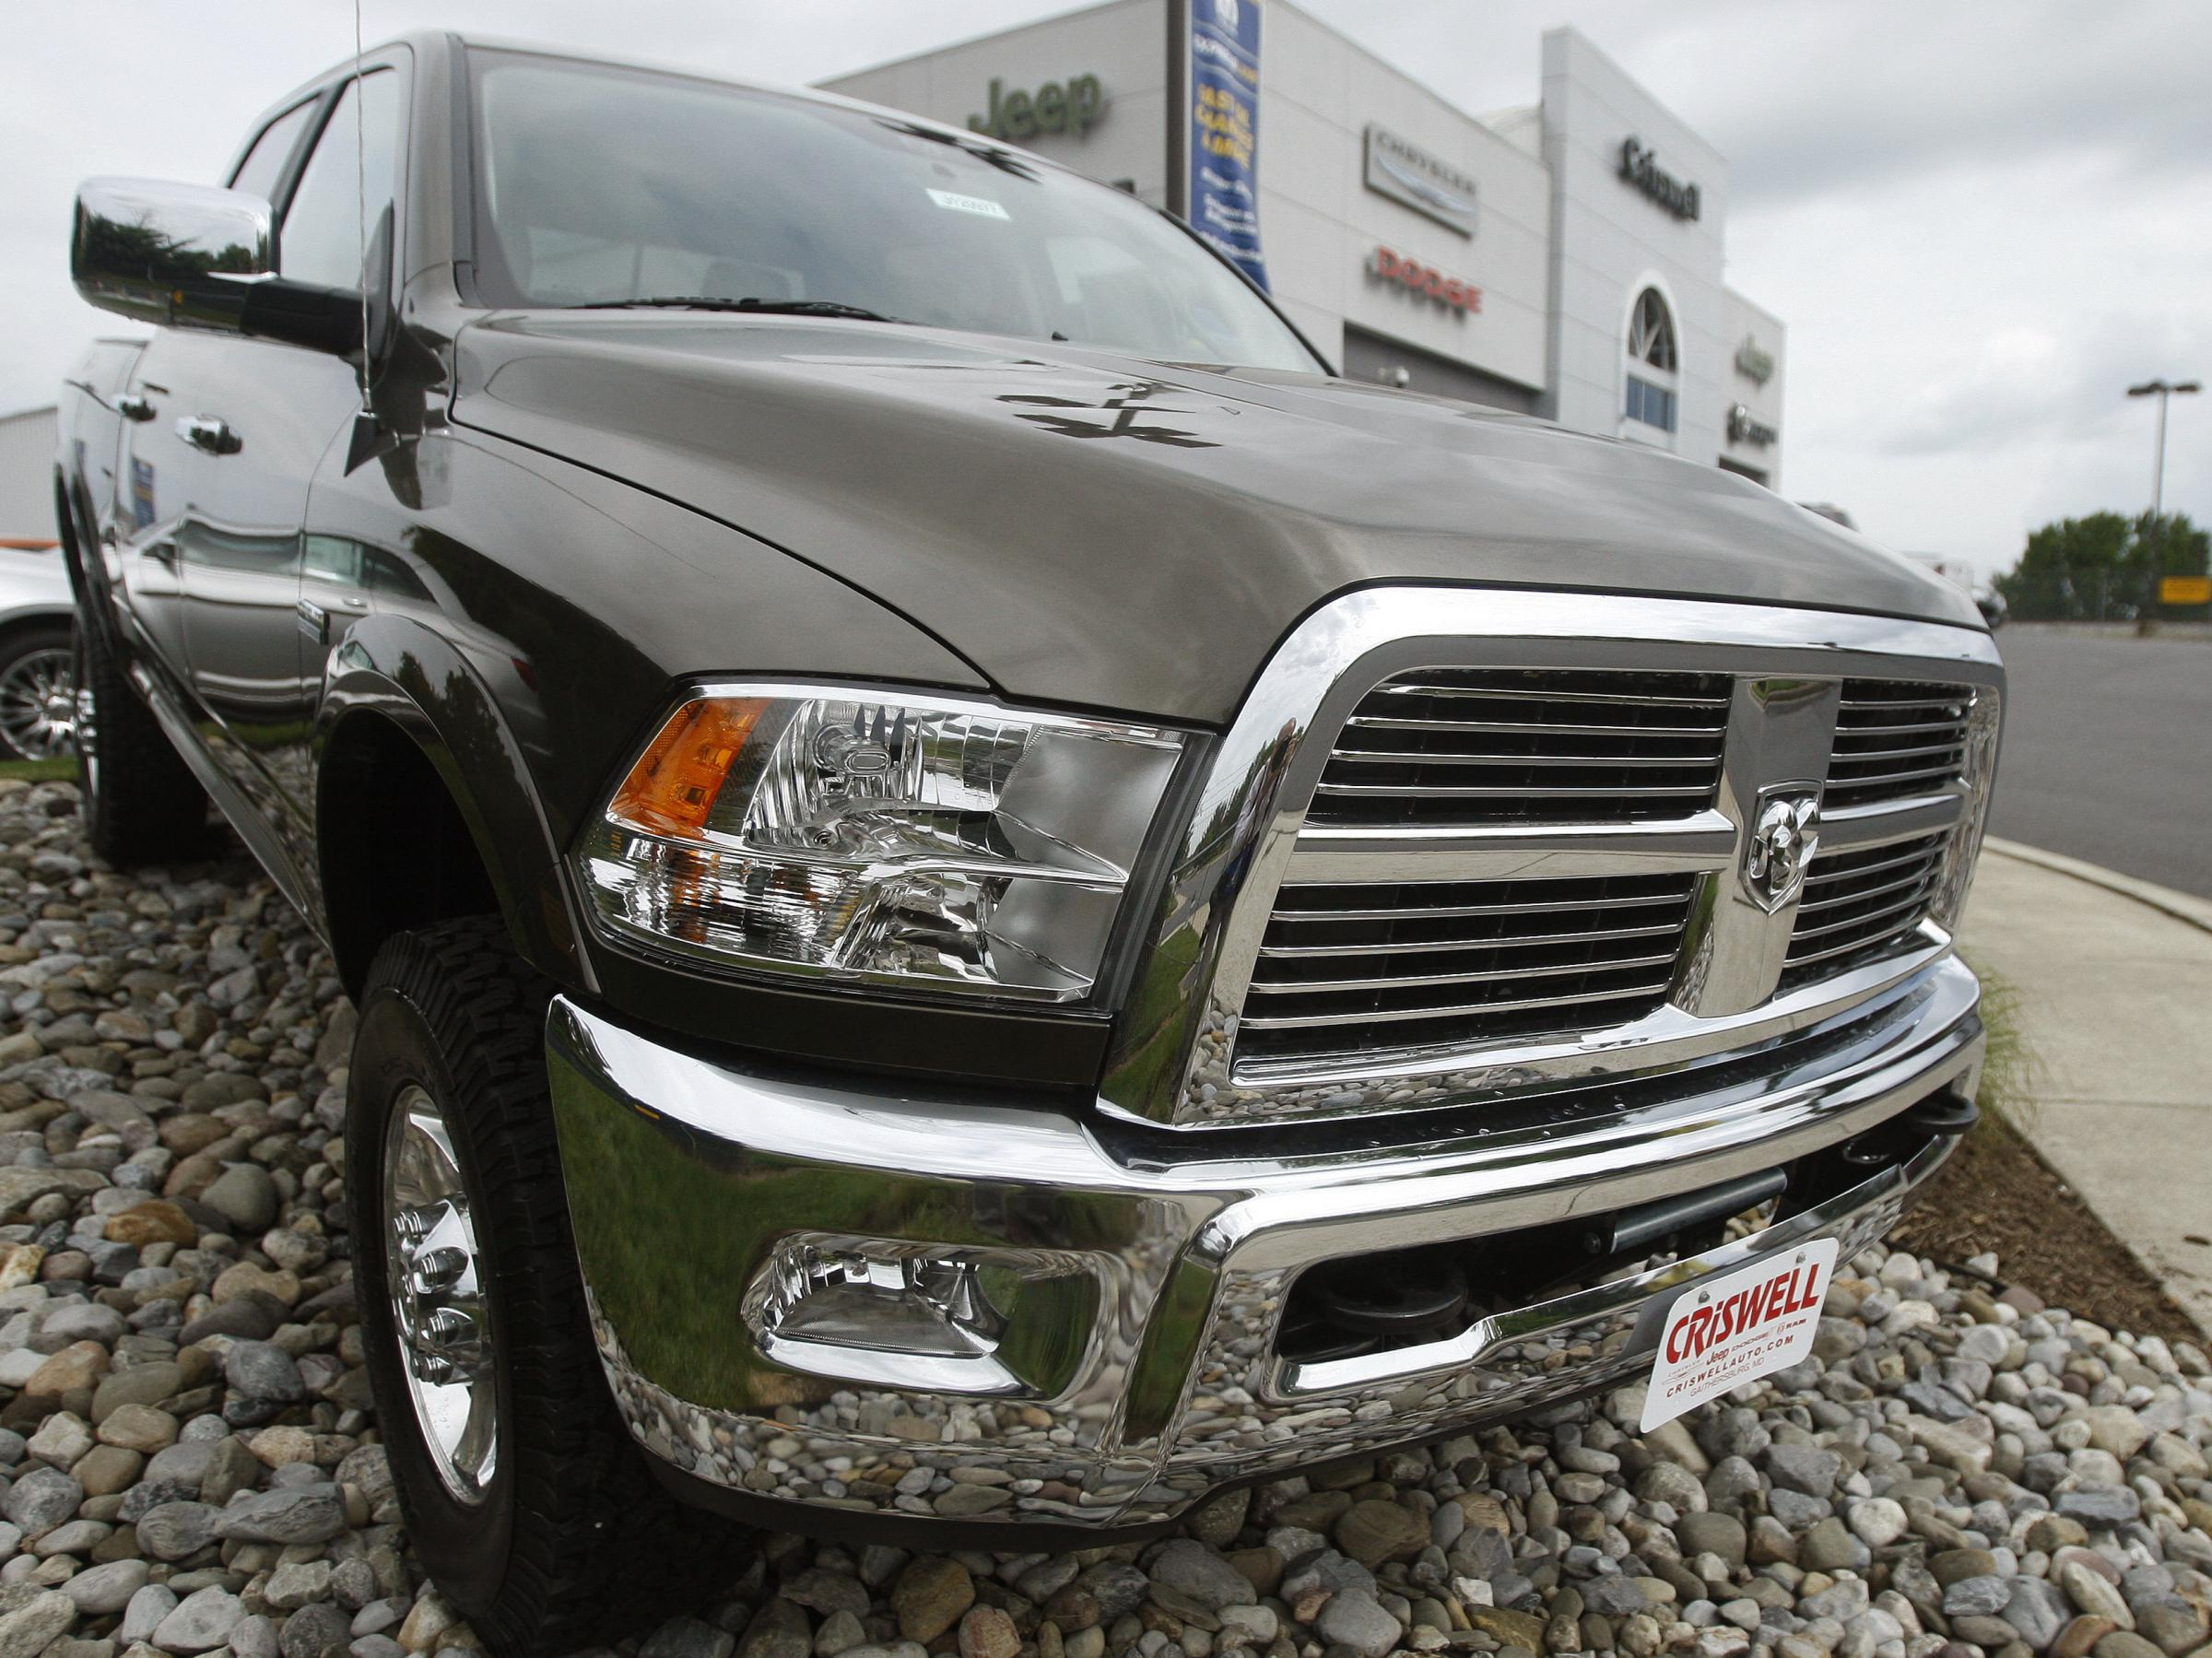 Big Three All Posted Double Digit Gains In Auto Sales Last Month